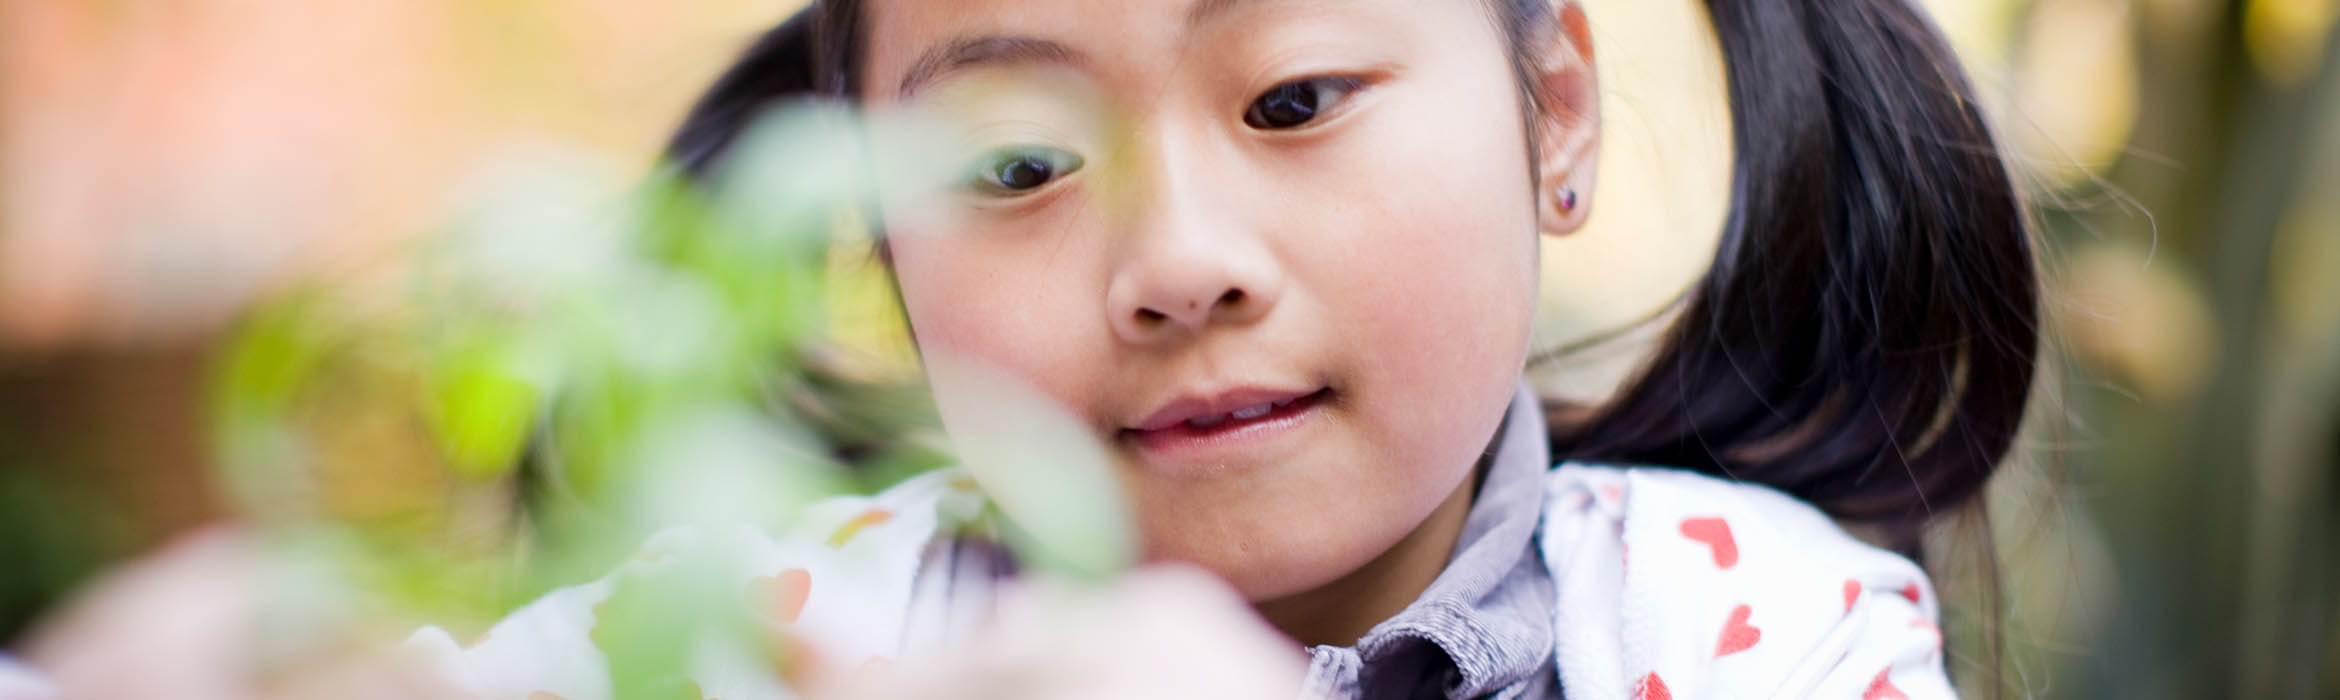 child plays with a plant